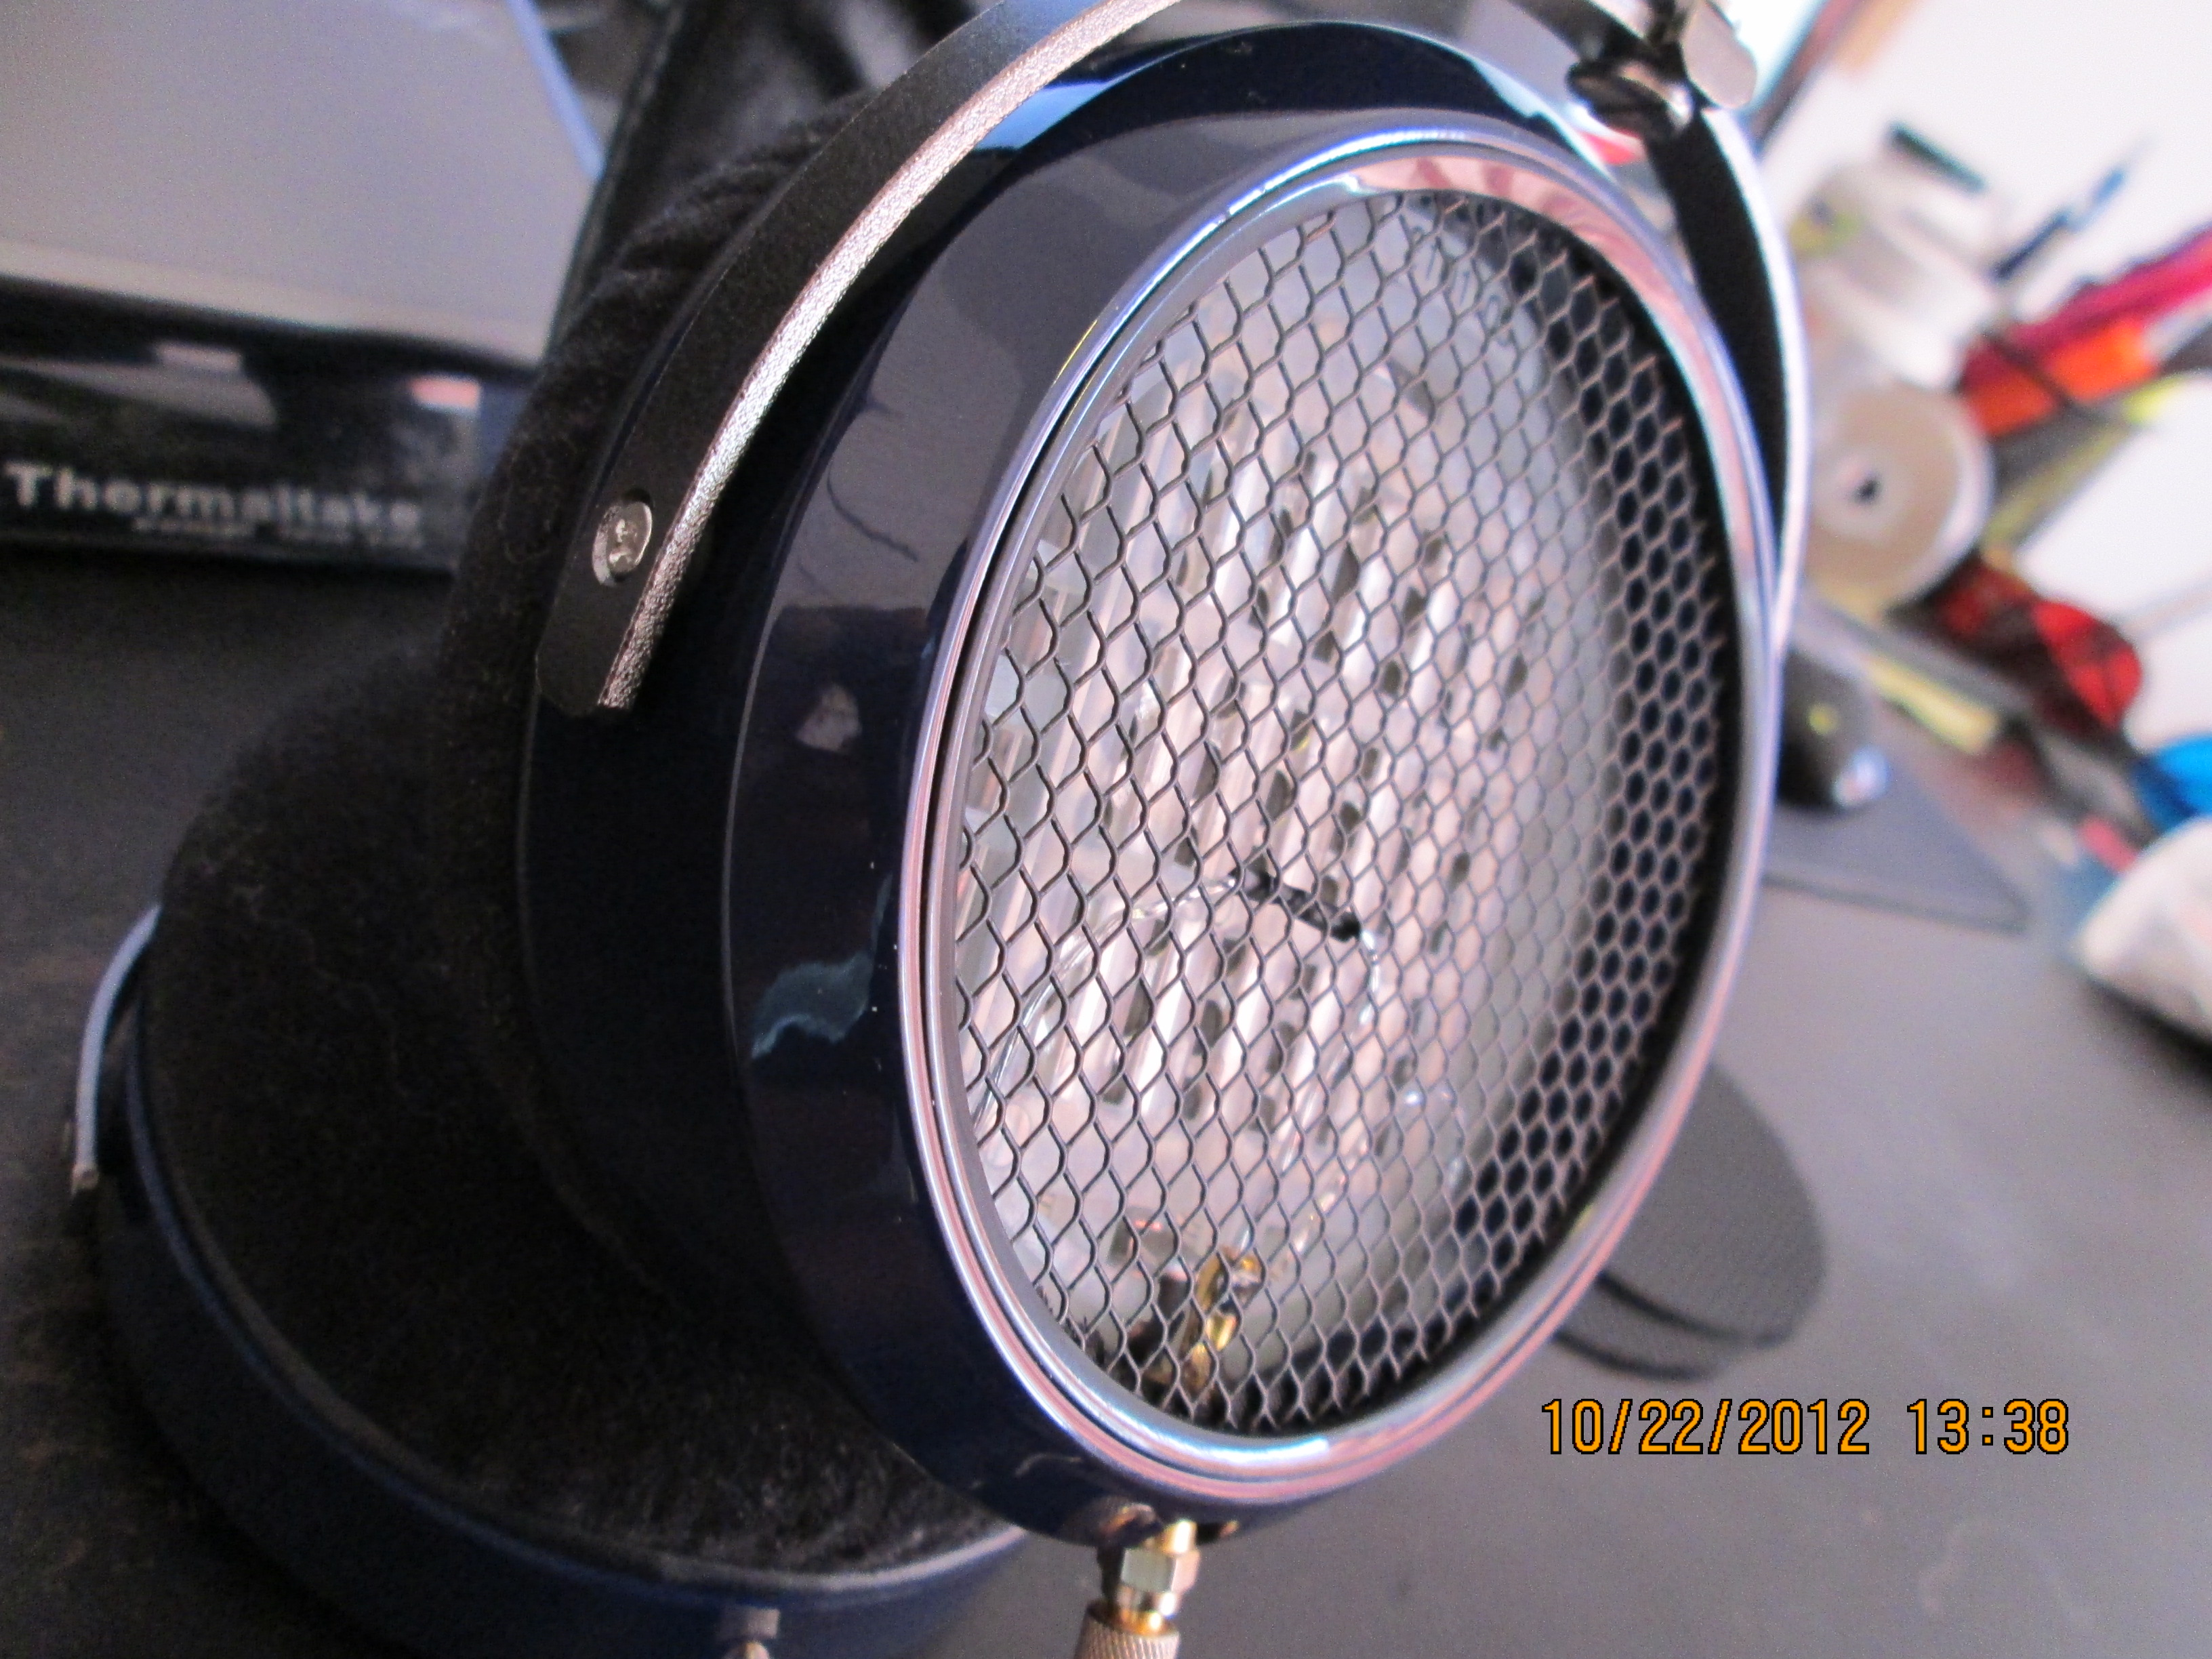 Hifiman Regrilling Mod = | Headphone Reviews and Discussion